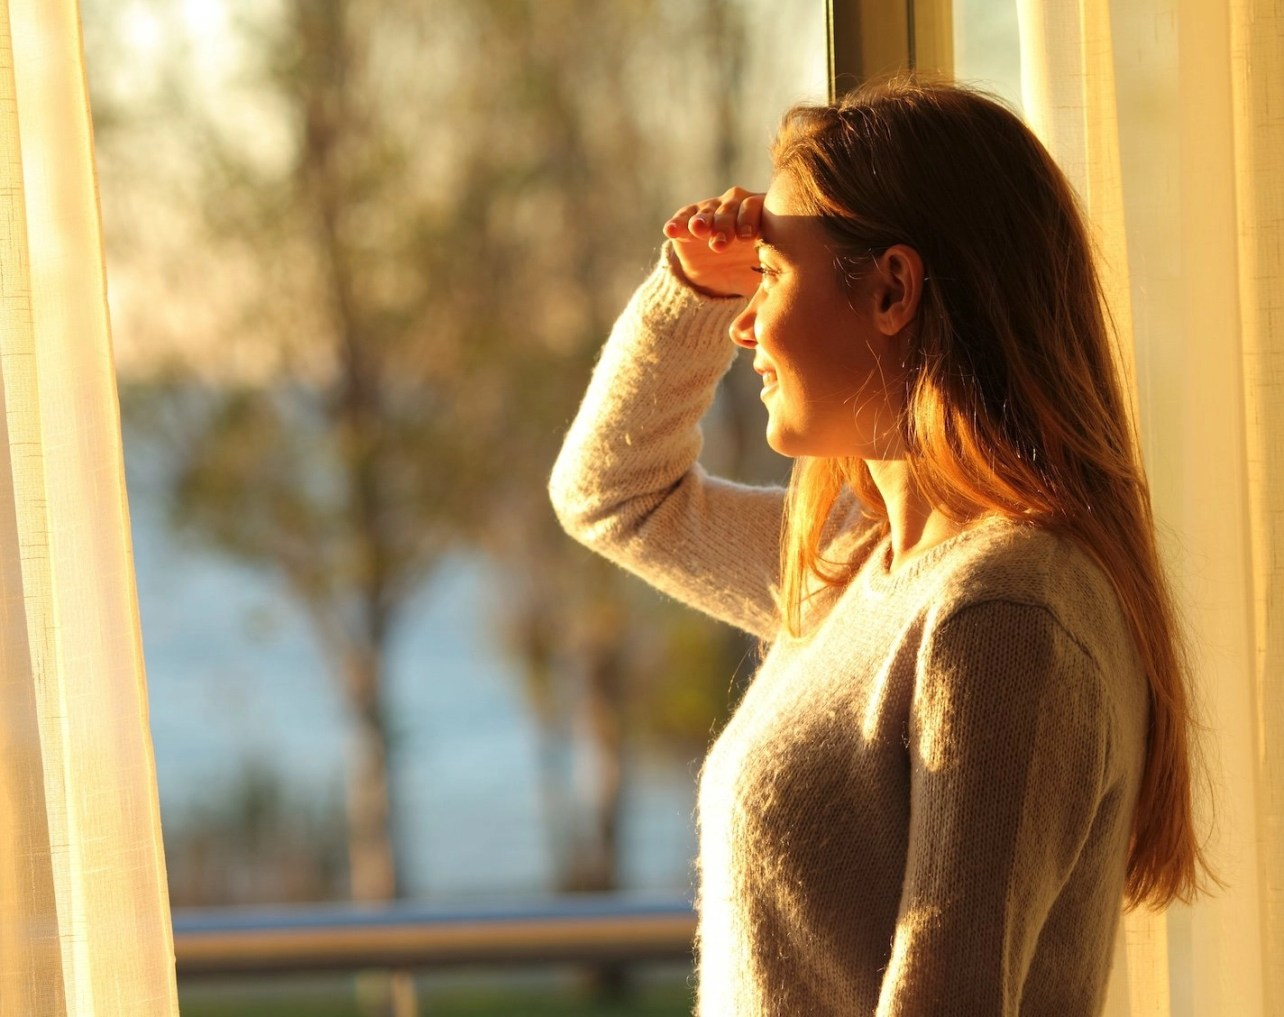 Glare Issues & Excessive Heat Problems As You Spend Time At Home? - Home Window Tinting in Detroit, Michigan